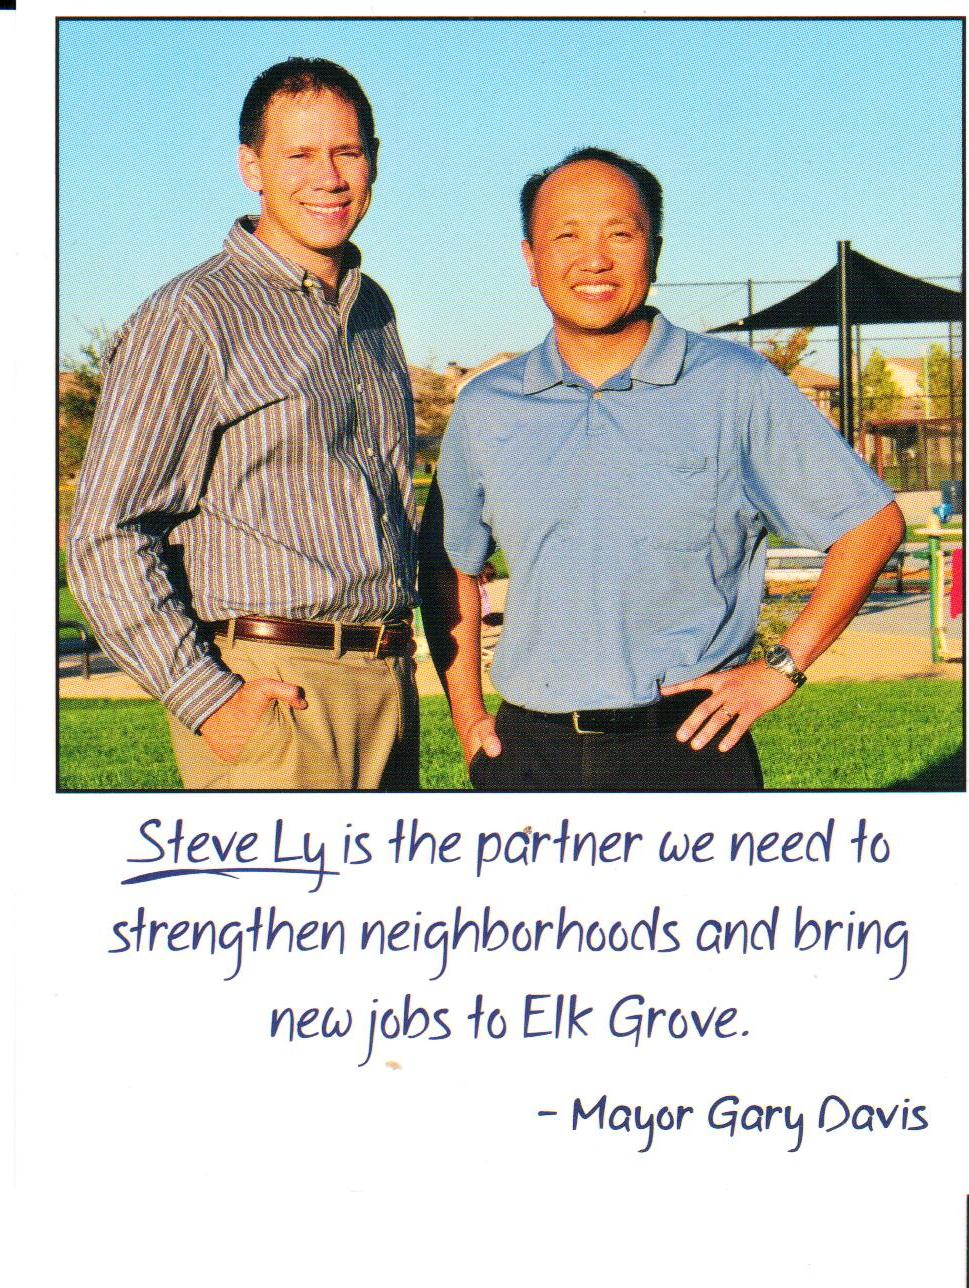 Video – Davis Backtracks From His and Ly's Campaign Promise of Elk Grove Jobs